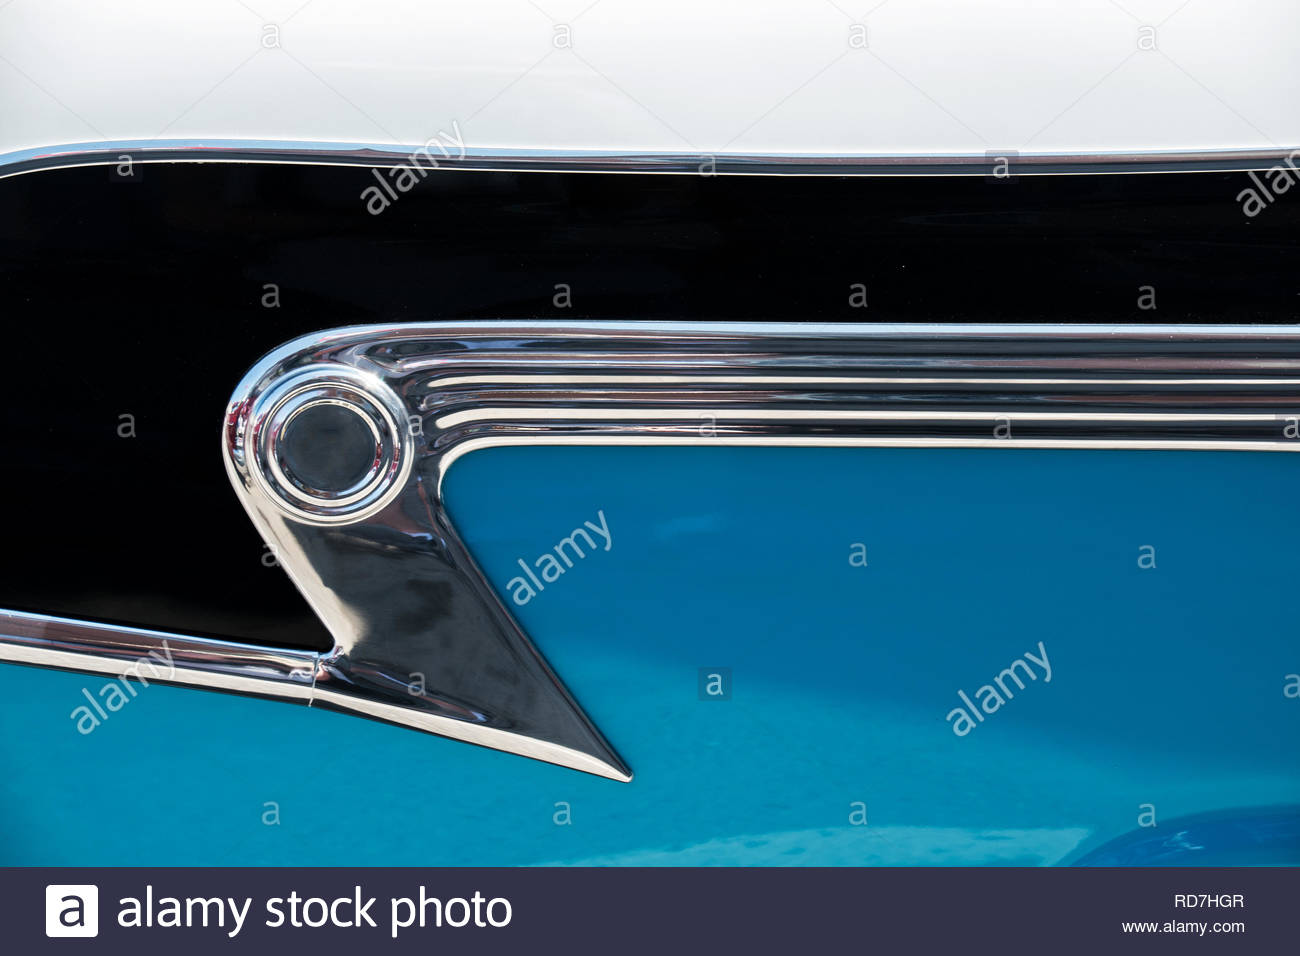 Aldi Lotus Grill Shiny Grill Stock Photos Shiny Grill Stock Images Alamy